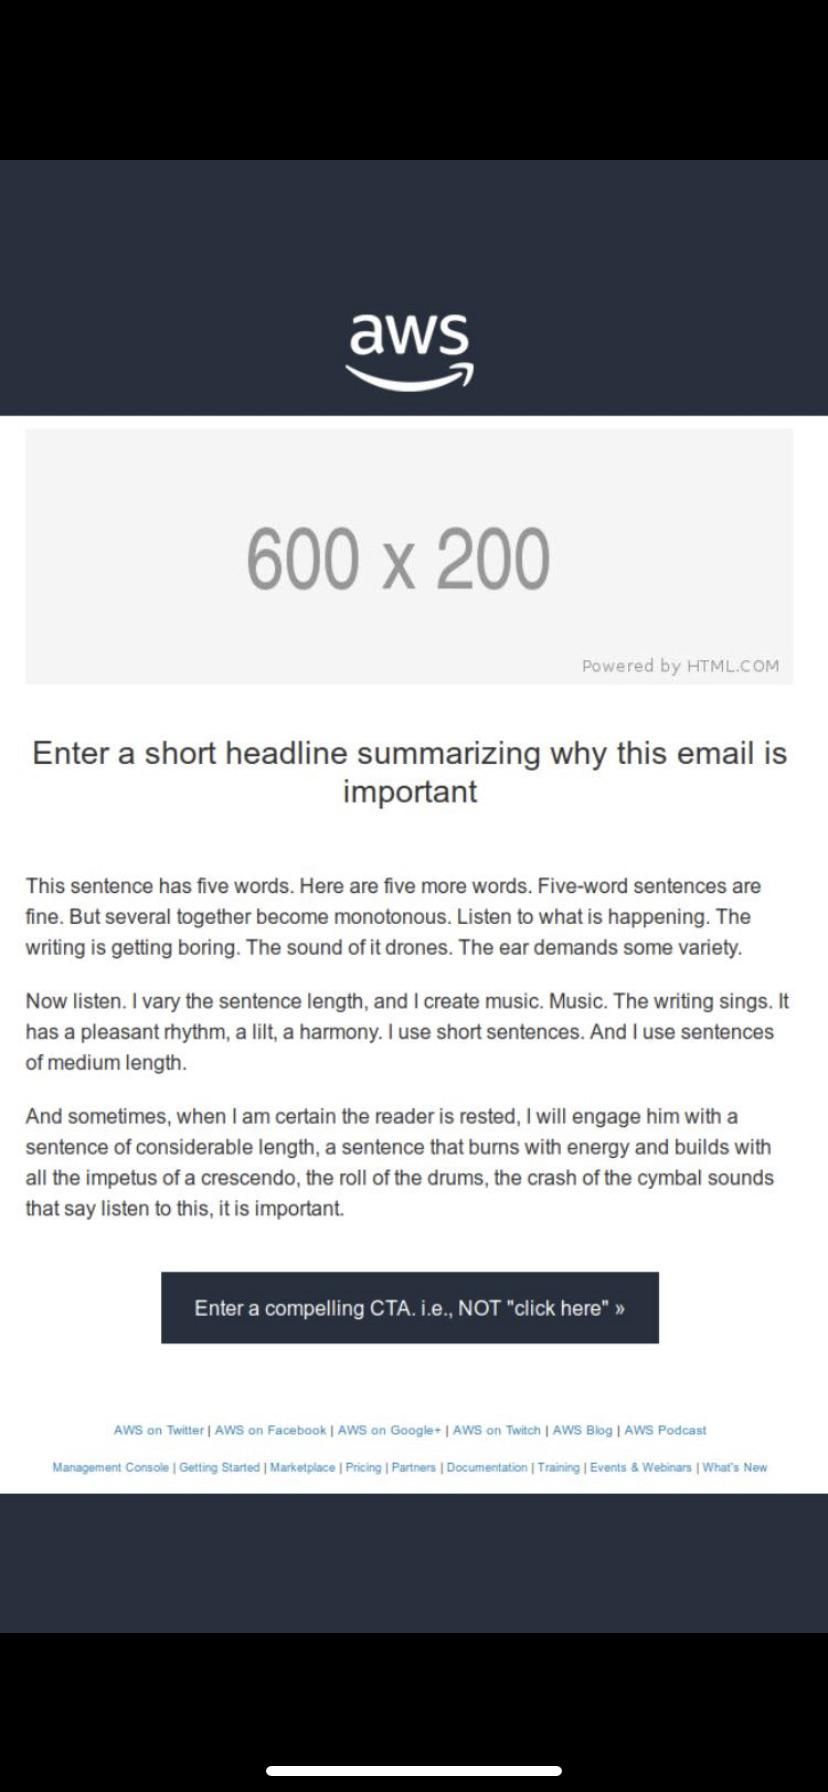 Amazon accidentally sent out their email template and it's hilarious!